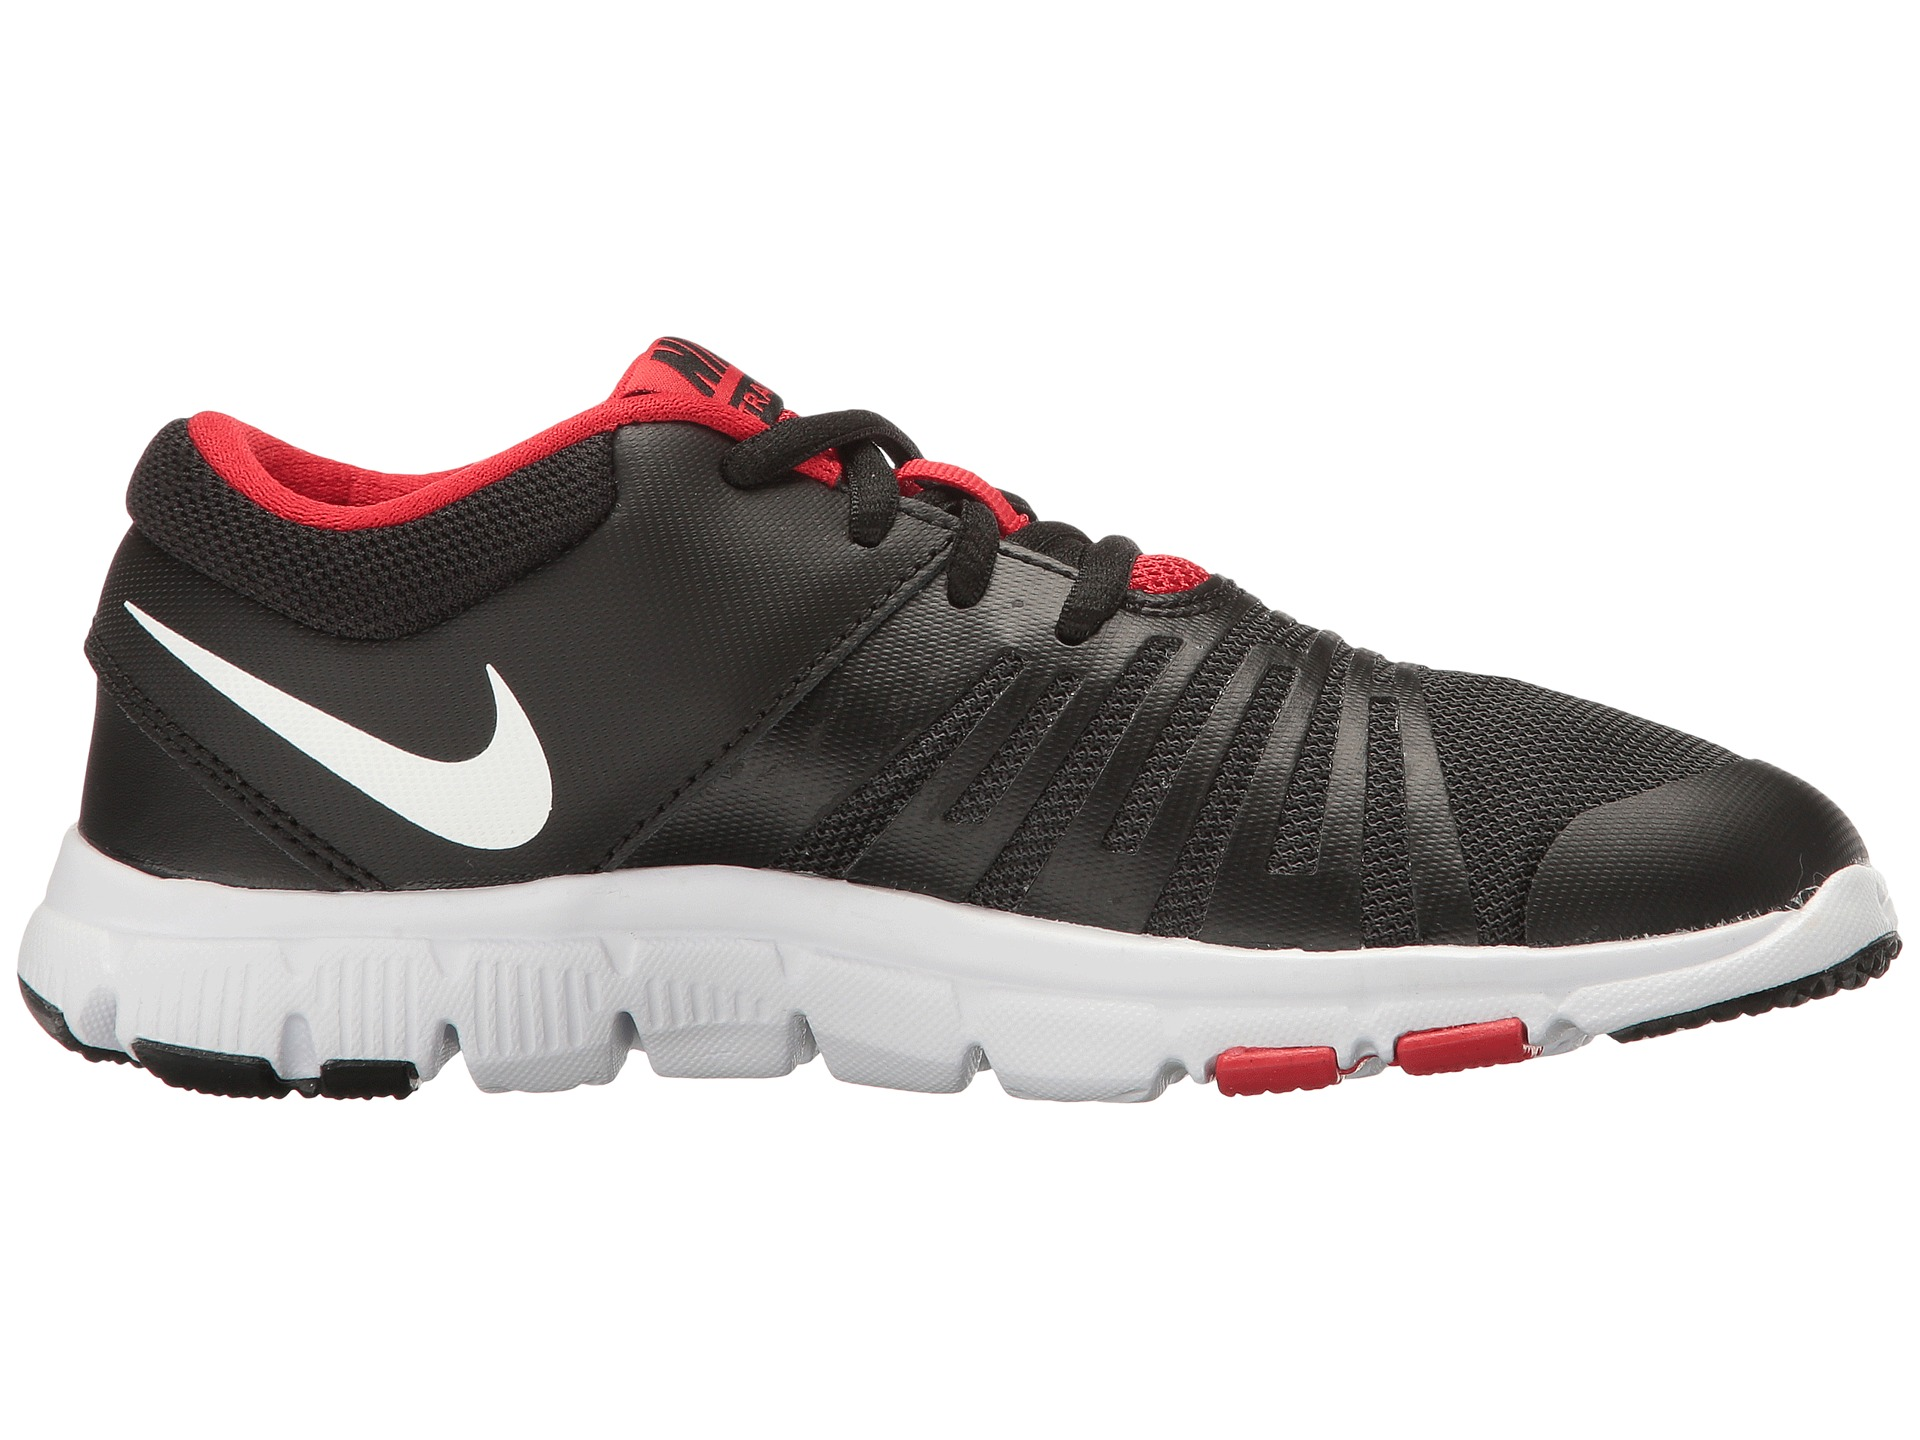 6bcb8eaeefd9a Tenisice Nike Free Rn Distance 2 Mens Running Shoes